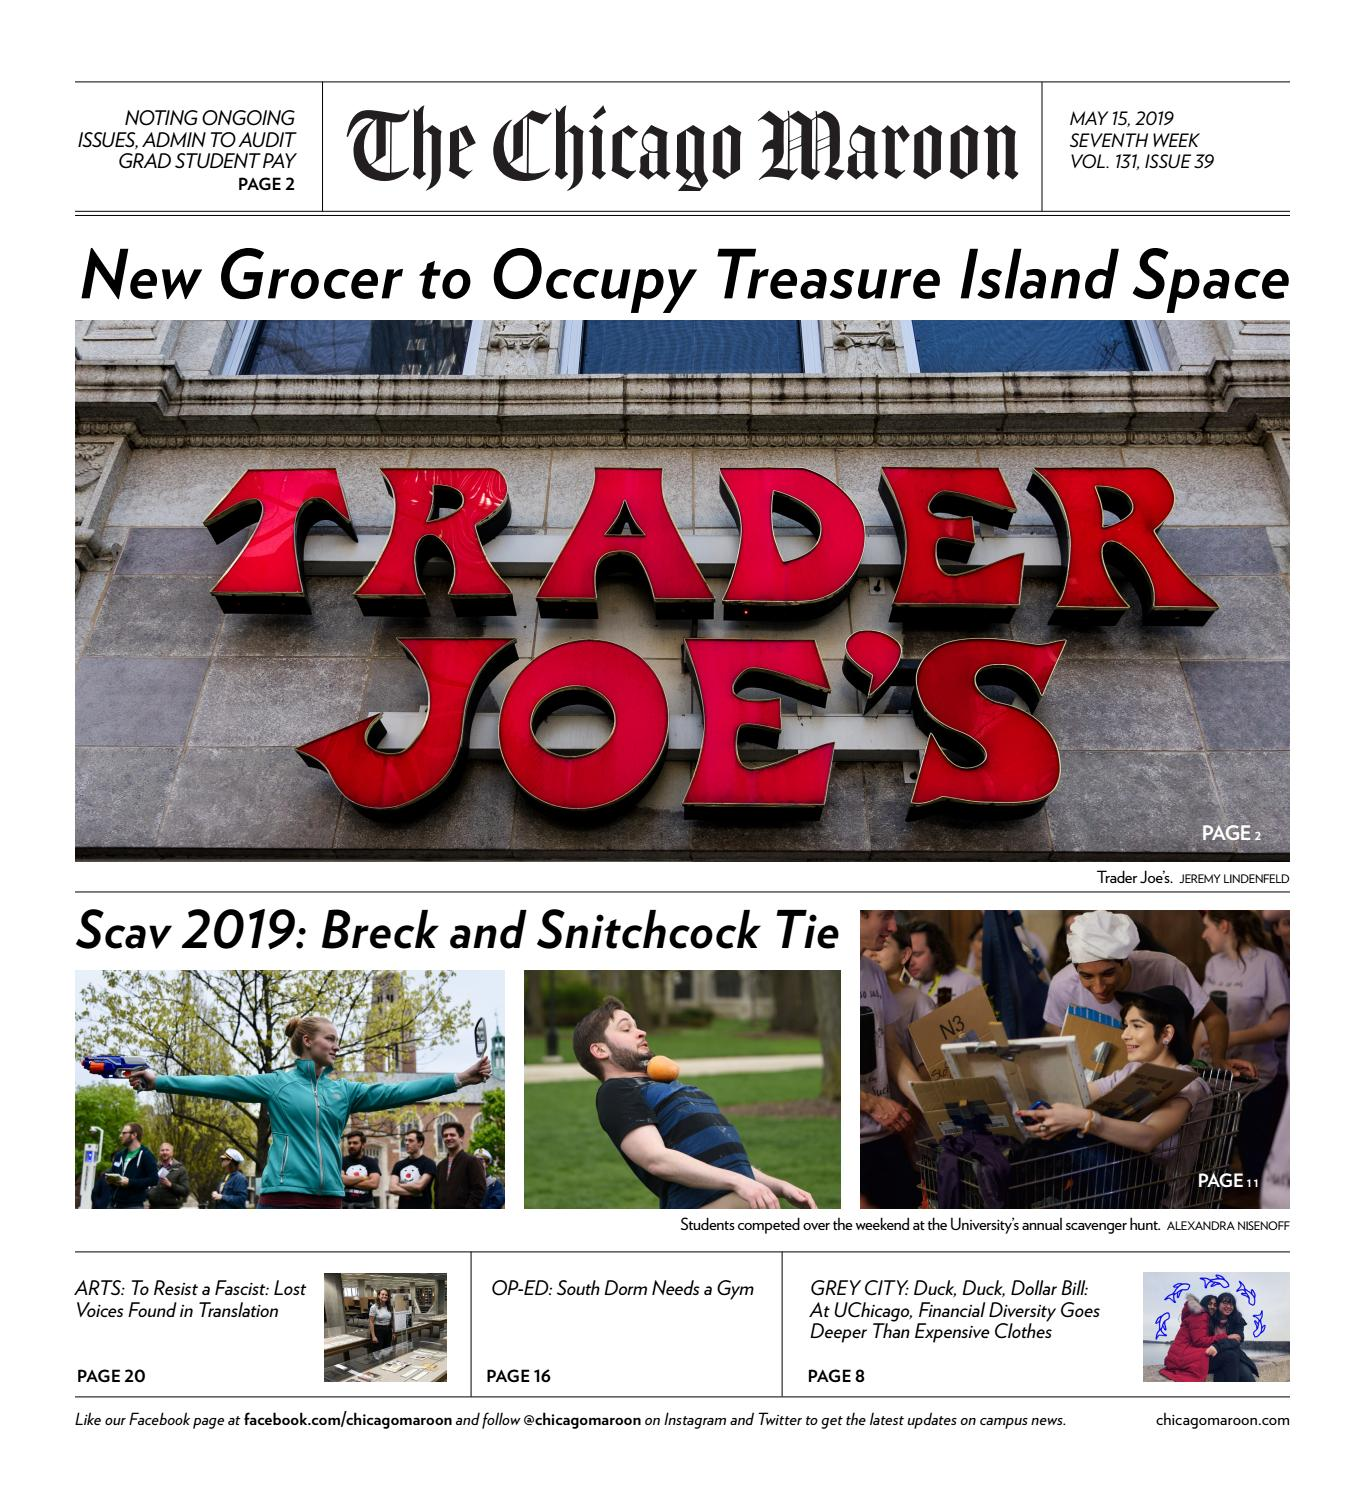 051519 by Chicago Maroon - issuu